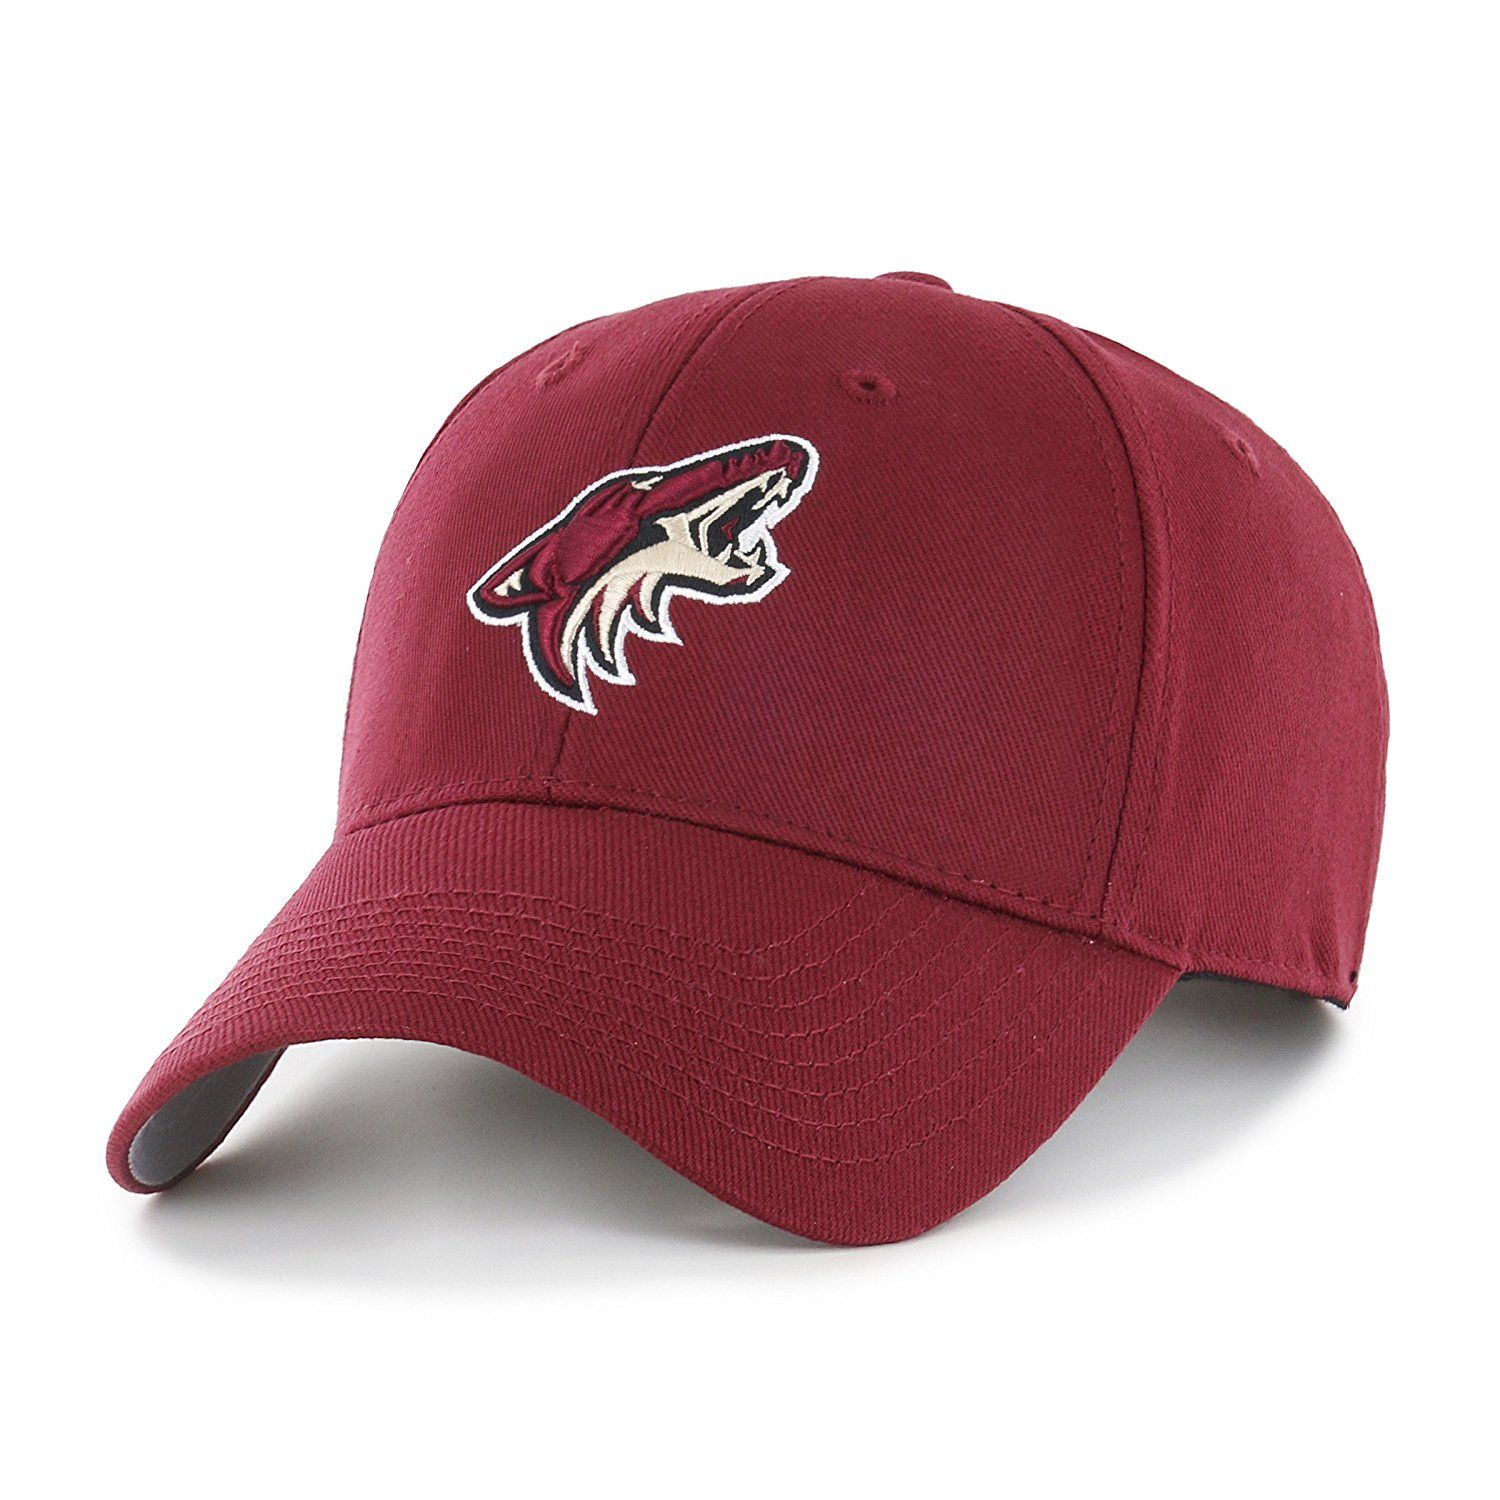 hot sale online 5080a dcfa2 arizona coyotes adidas nhl sun bleached slouch cap  arizona coyotes nhl ots  all star adjustable hat price 18.00